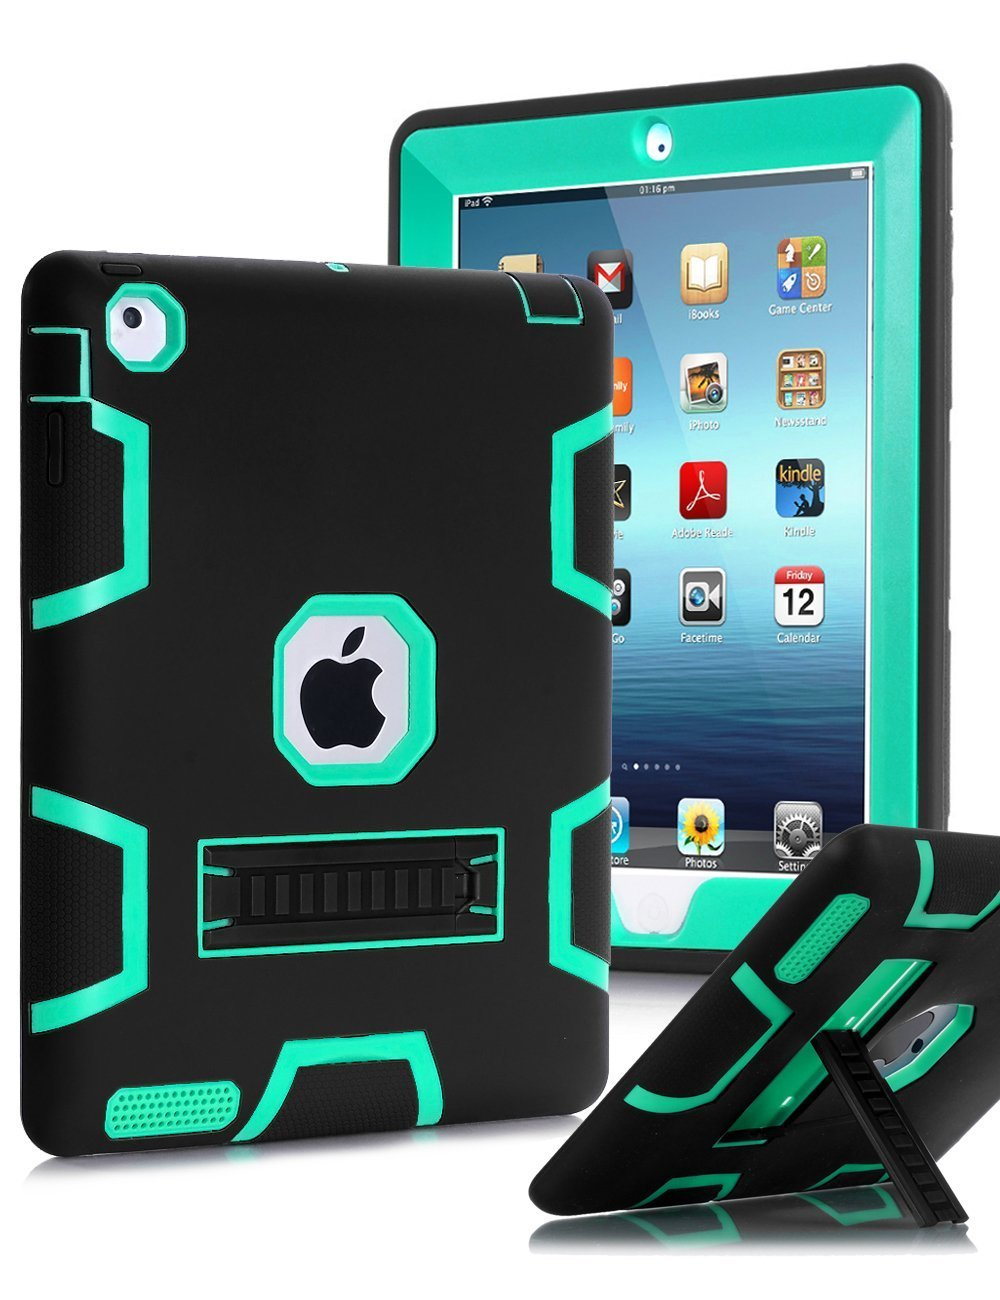 TIANLI Protection Shockproof Protective Generation